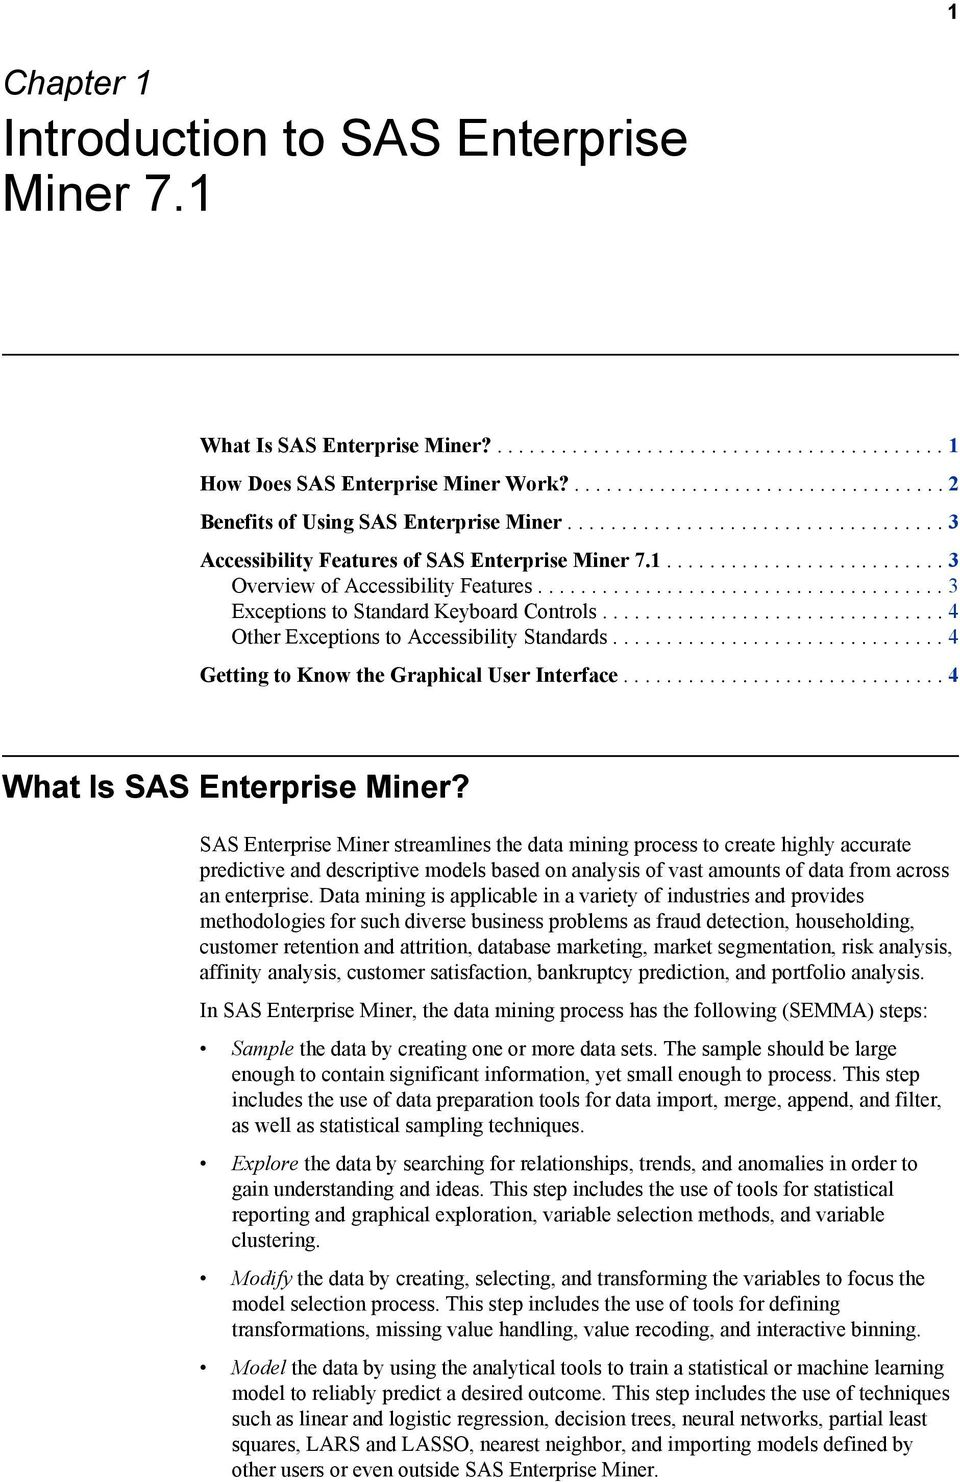 Getting Started with SAS Enterprise Miner PDF